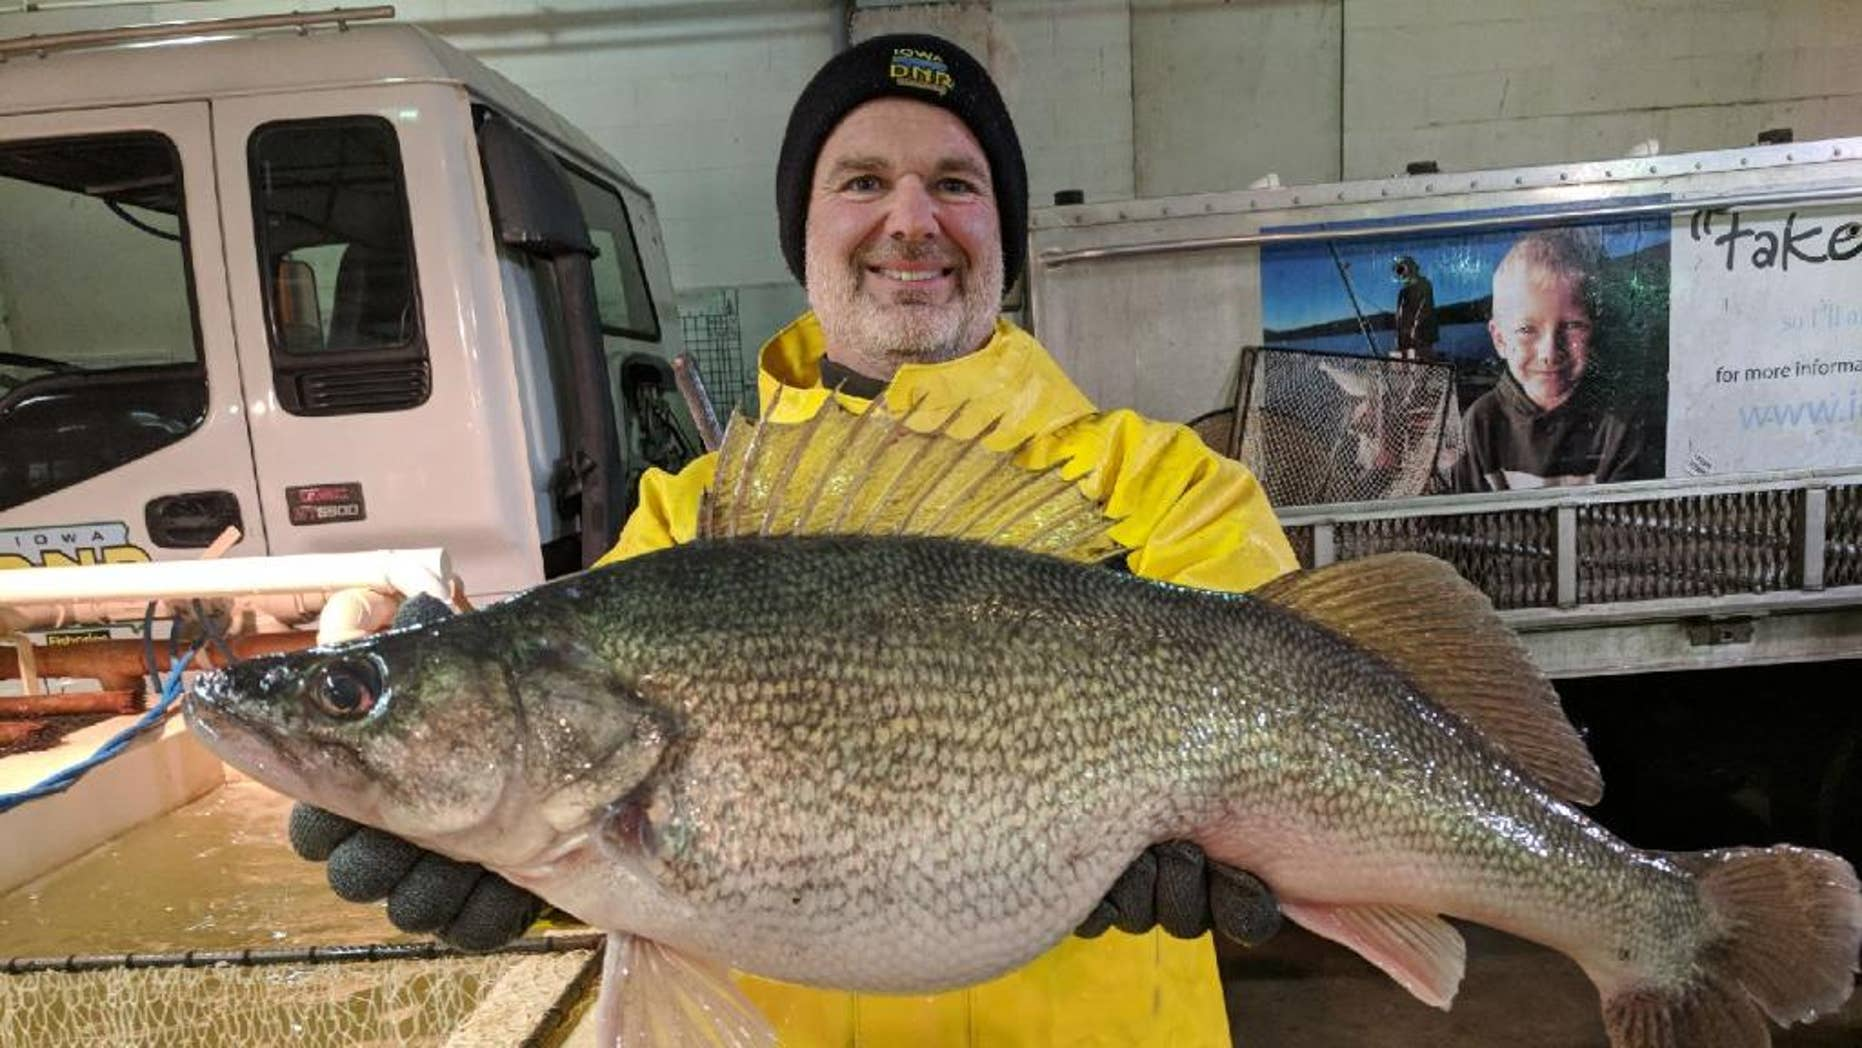 The walleye weighed nearly 13 pounds and was just over 28 inches long.